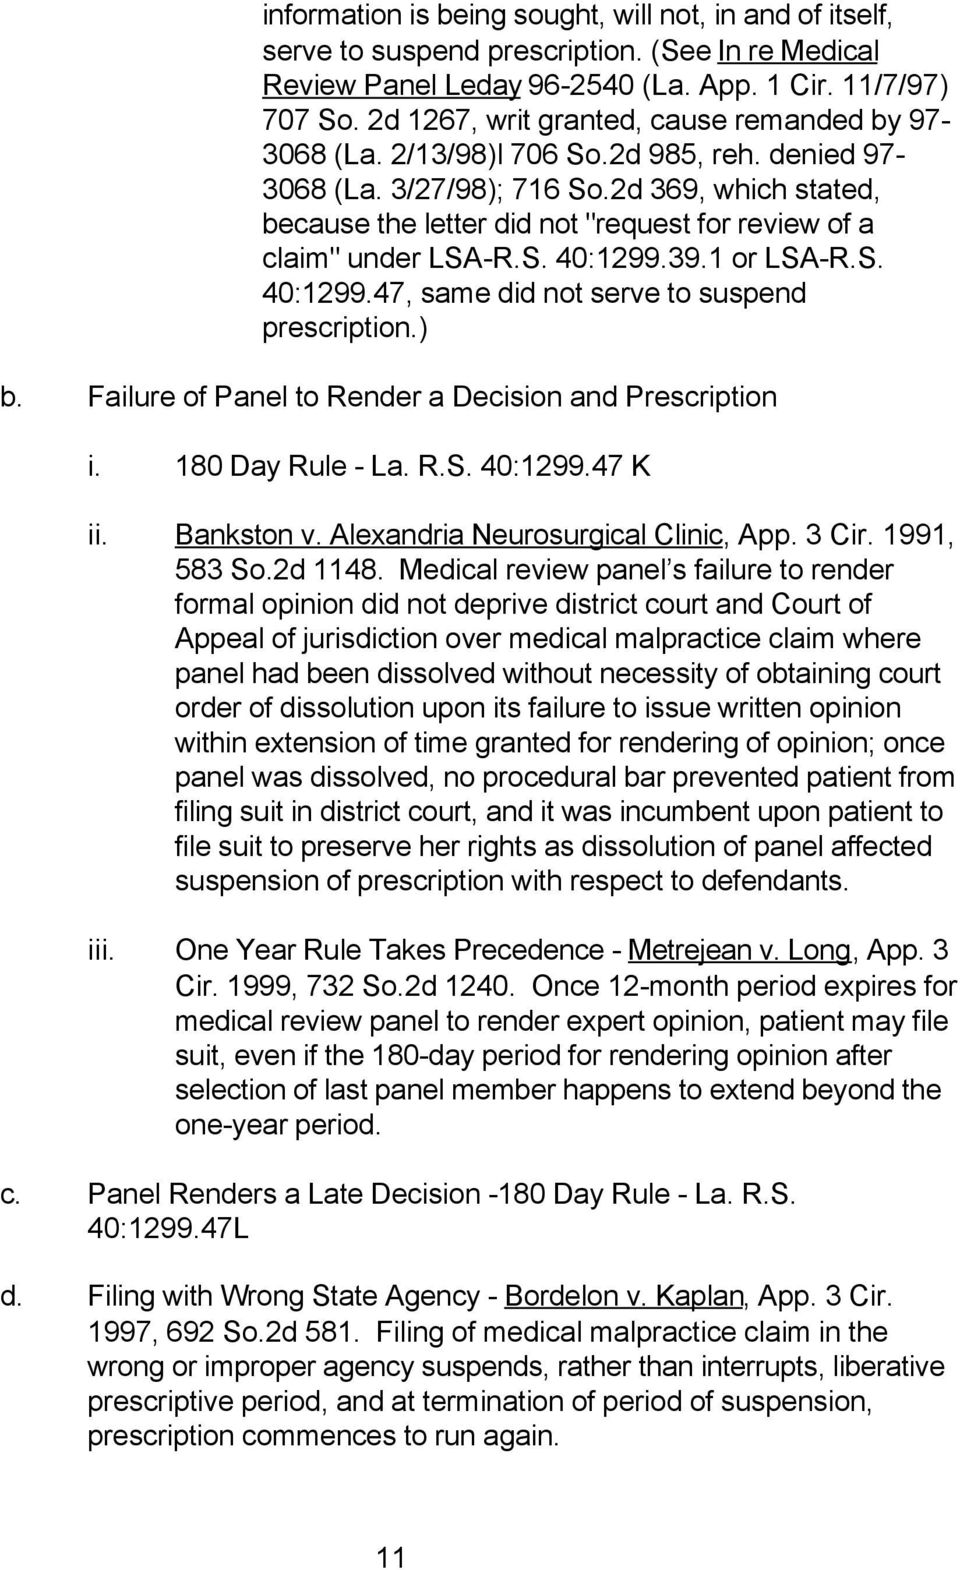 "2d 369, which stated, because the letter did not ""request for review of a claim"" under LSA-R.S. 40:1299.39.1 or LSA-R.S. 40:1299.47, same did not serve to suspend prescription.) b."